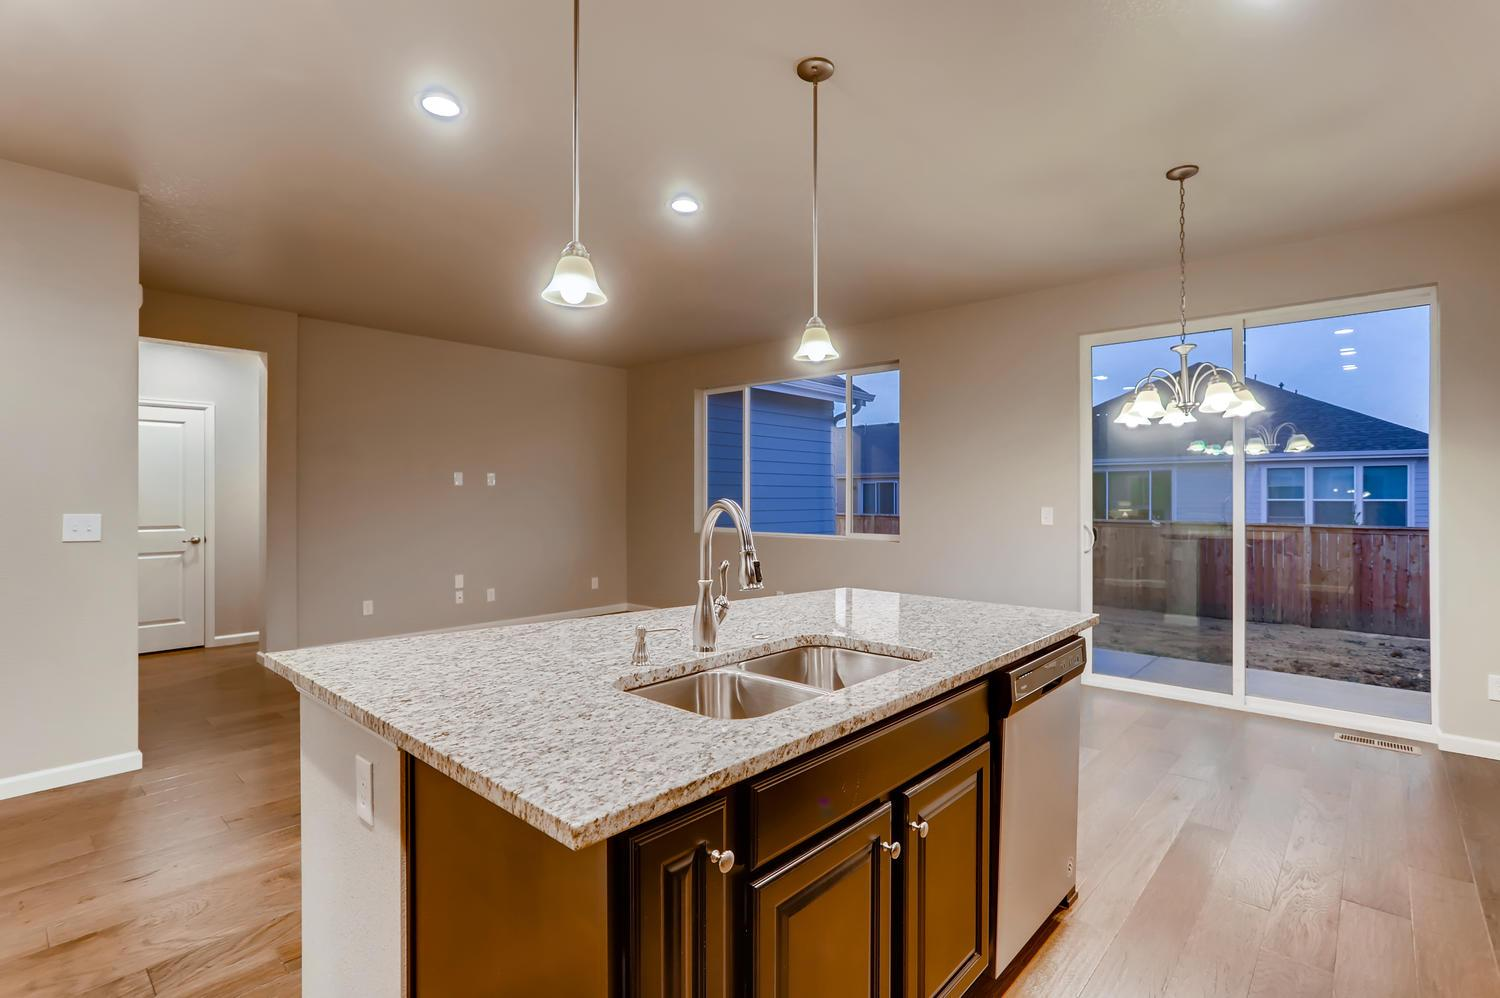 Kitchen featured in the Ironton - Prairie Star By RichfieldHomes in Fort Collins-Loveland, CO